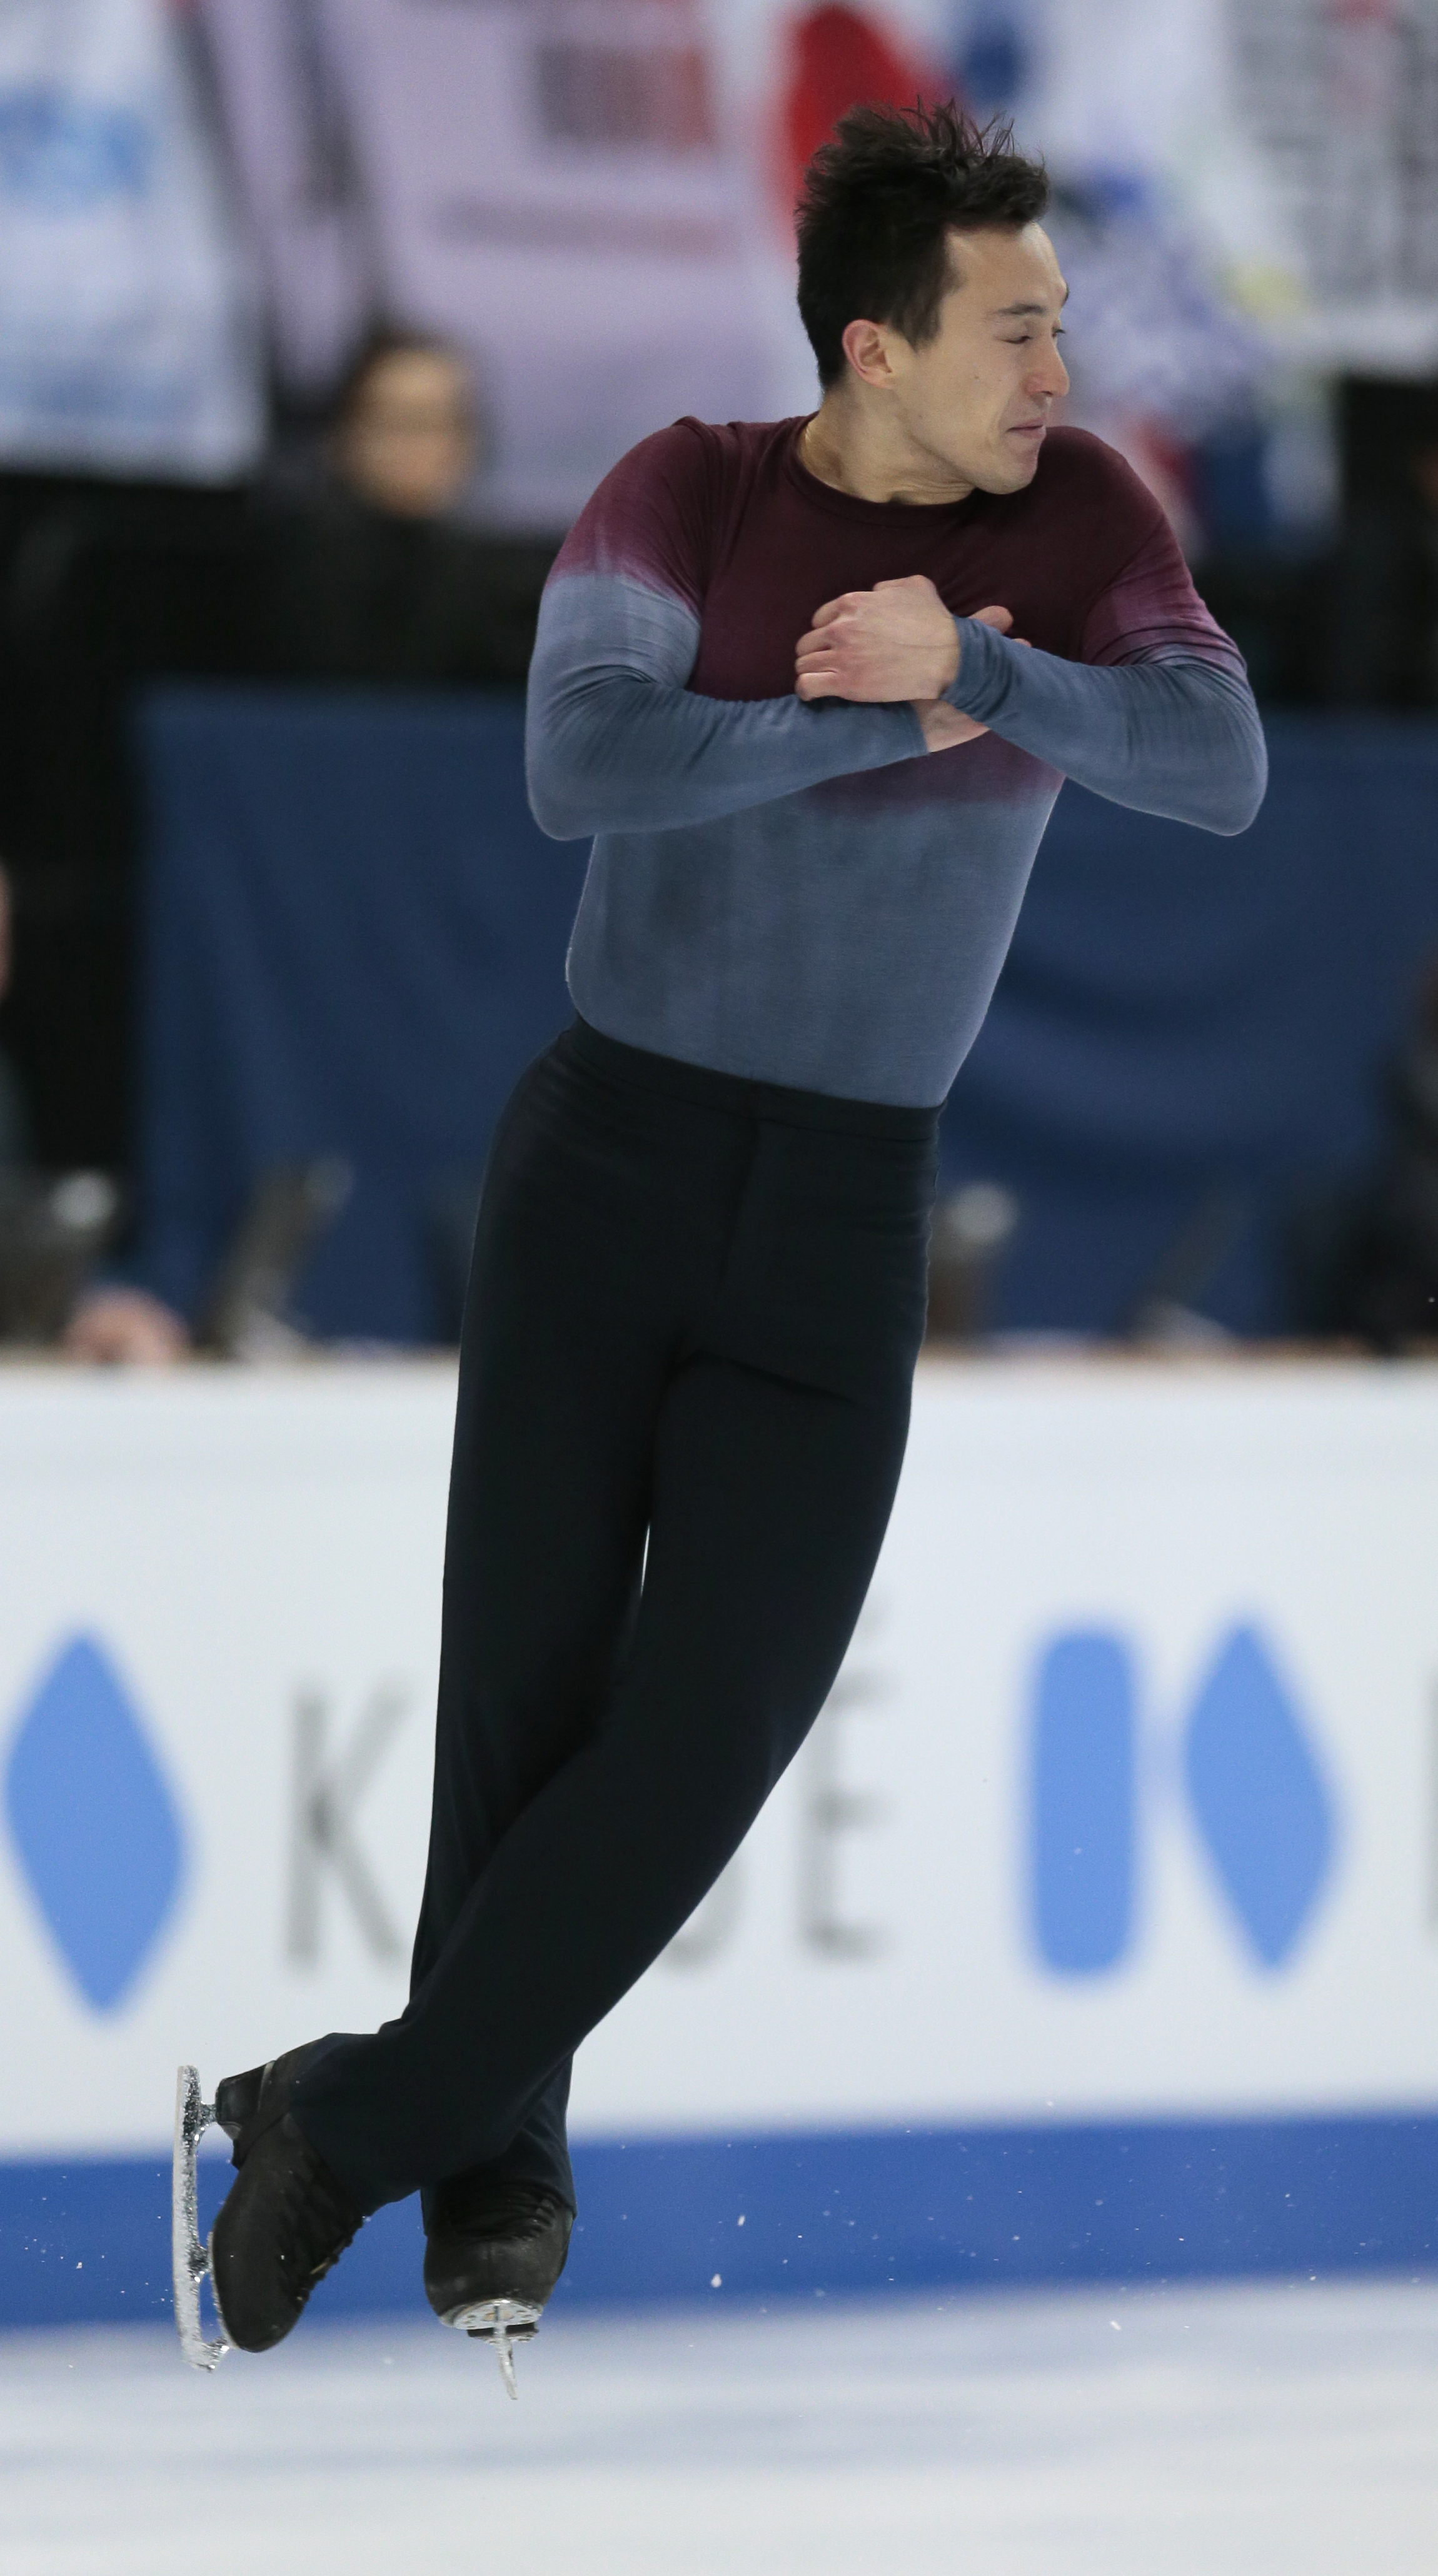 Patrick Chan, of Canada, skates his free program at the World figure skating championships in Helsinki, Finland, on Saturday, April 1, 2017. (AP Photo/Ivan Sekretarev)